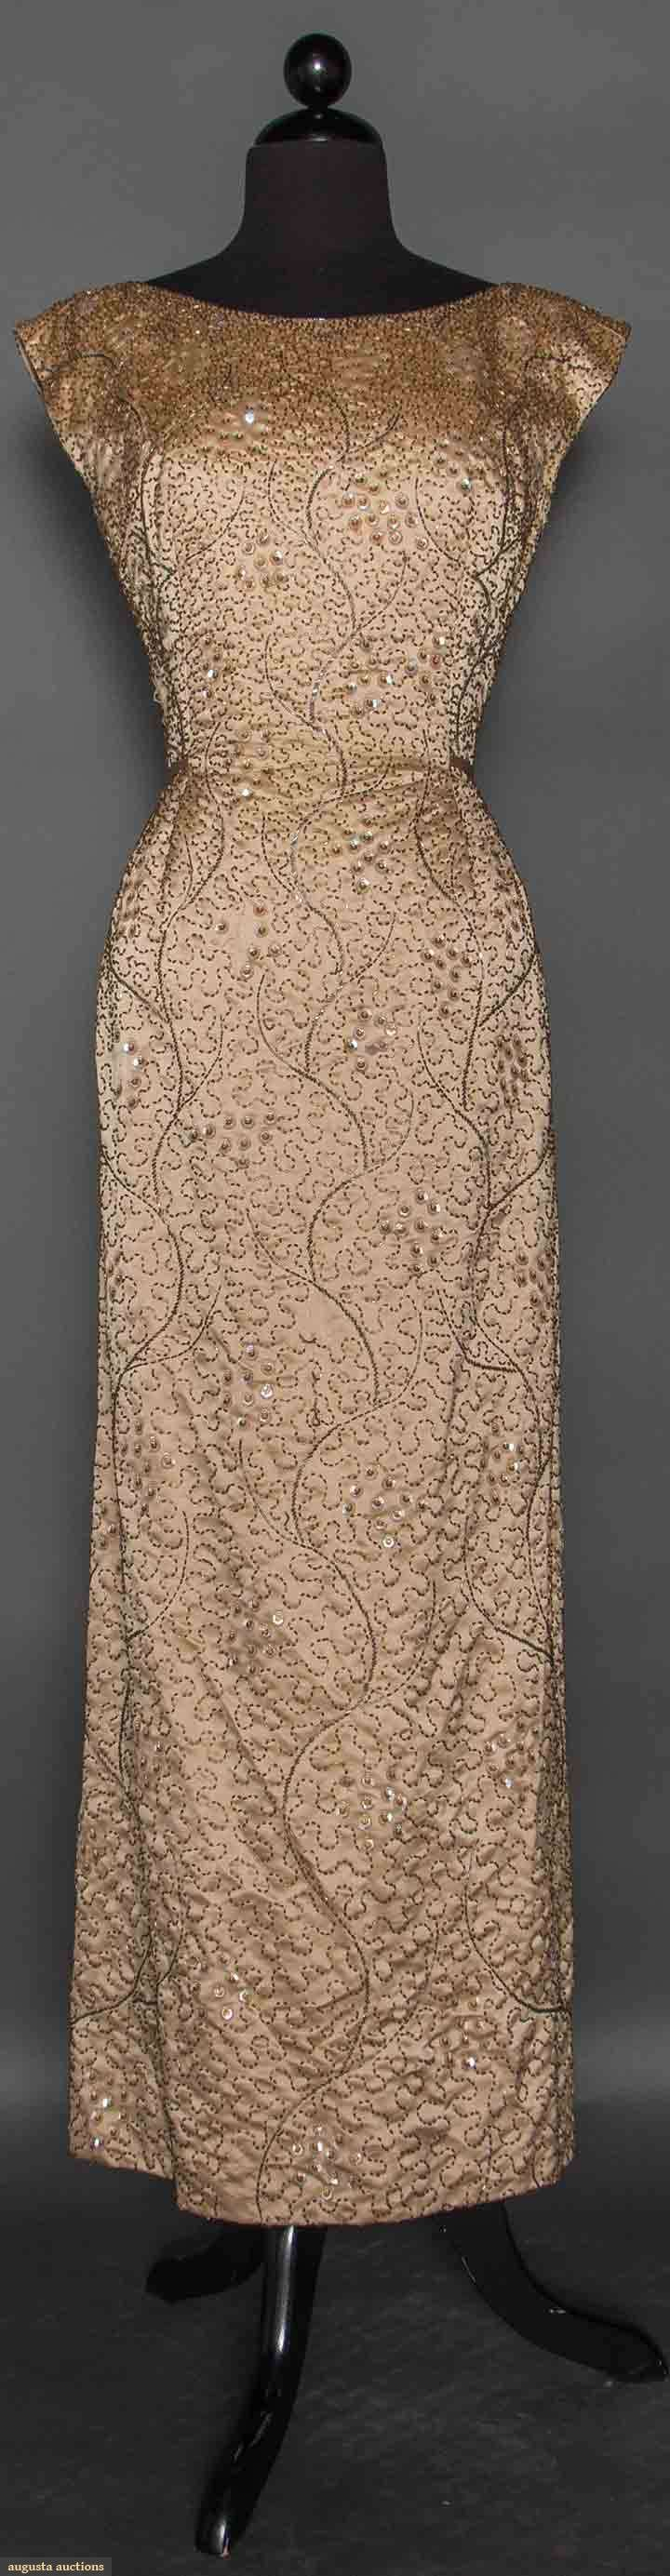 """GOTHE BEADED GOWN, 1950s Light golden brown sleeveless long sheath, covered w/ bugle beads in vermicelli pattern & clusters of irridescent sequins, gold China silk lining, label """"Gothe New York Paris"""""""